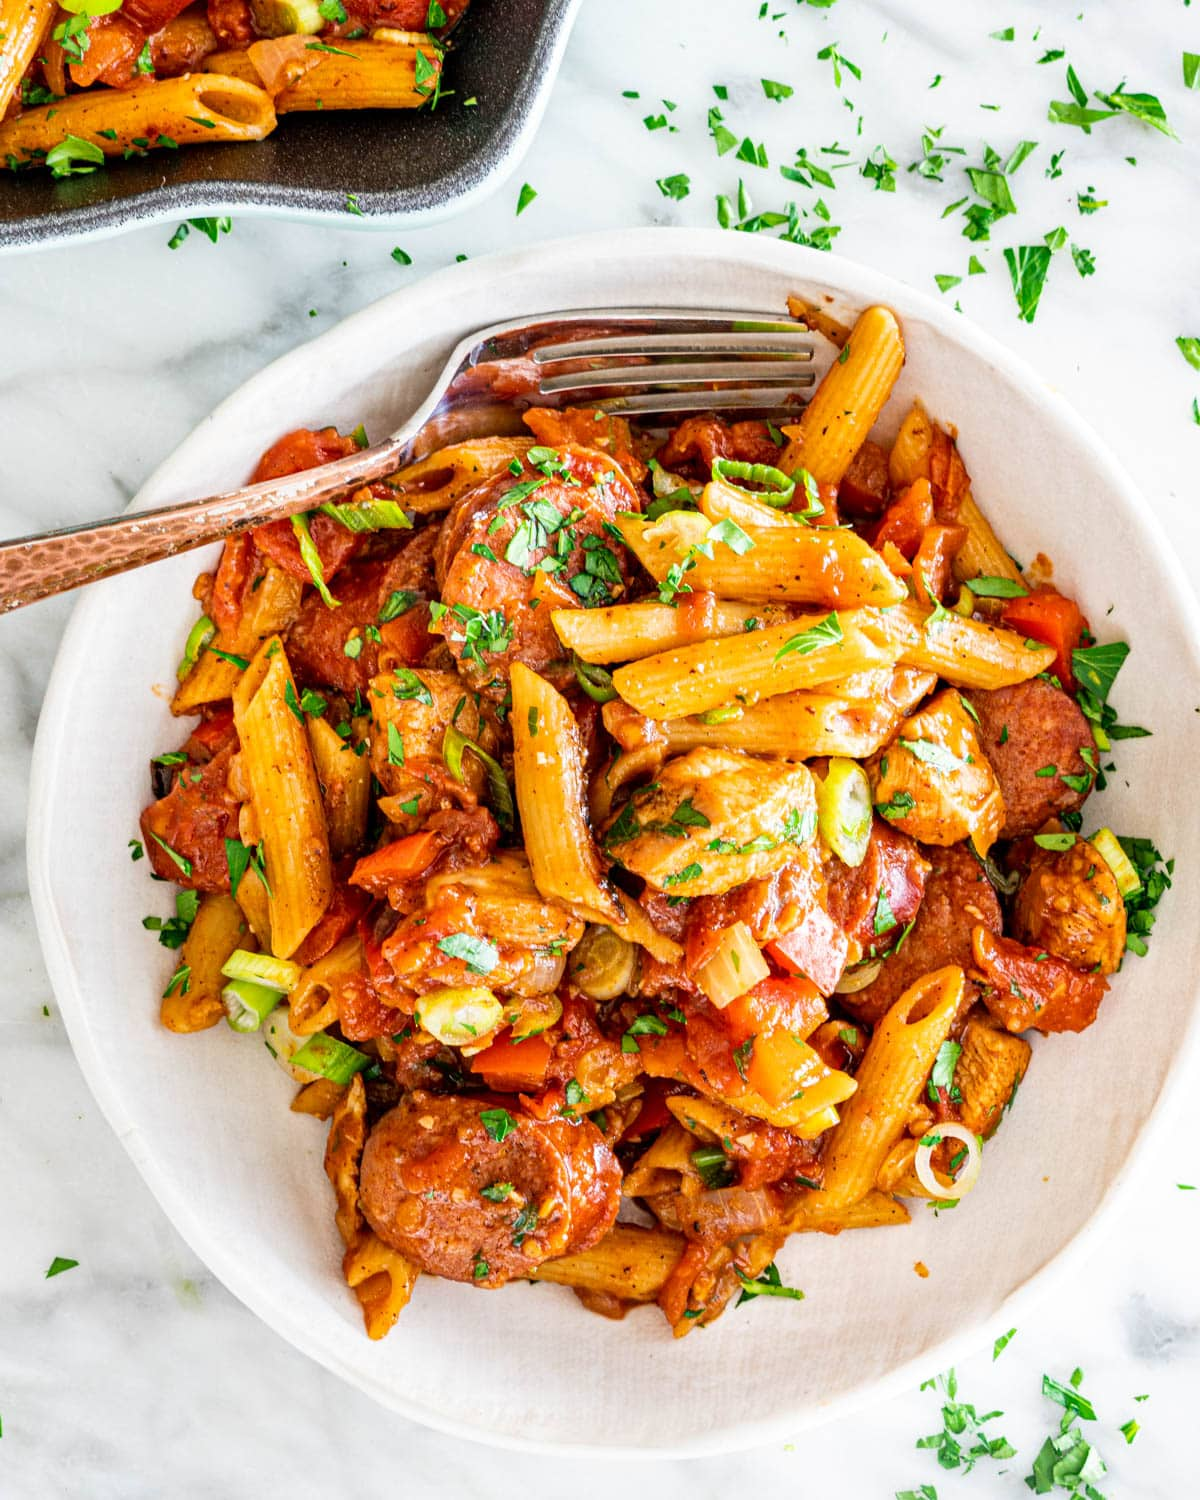 Chicken and Sausage Penne Jambalaya in a white plate